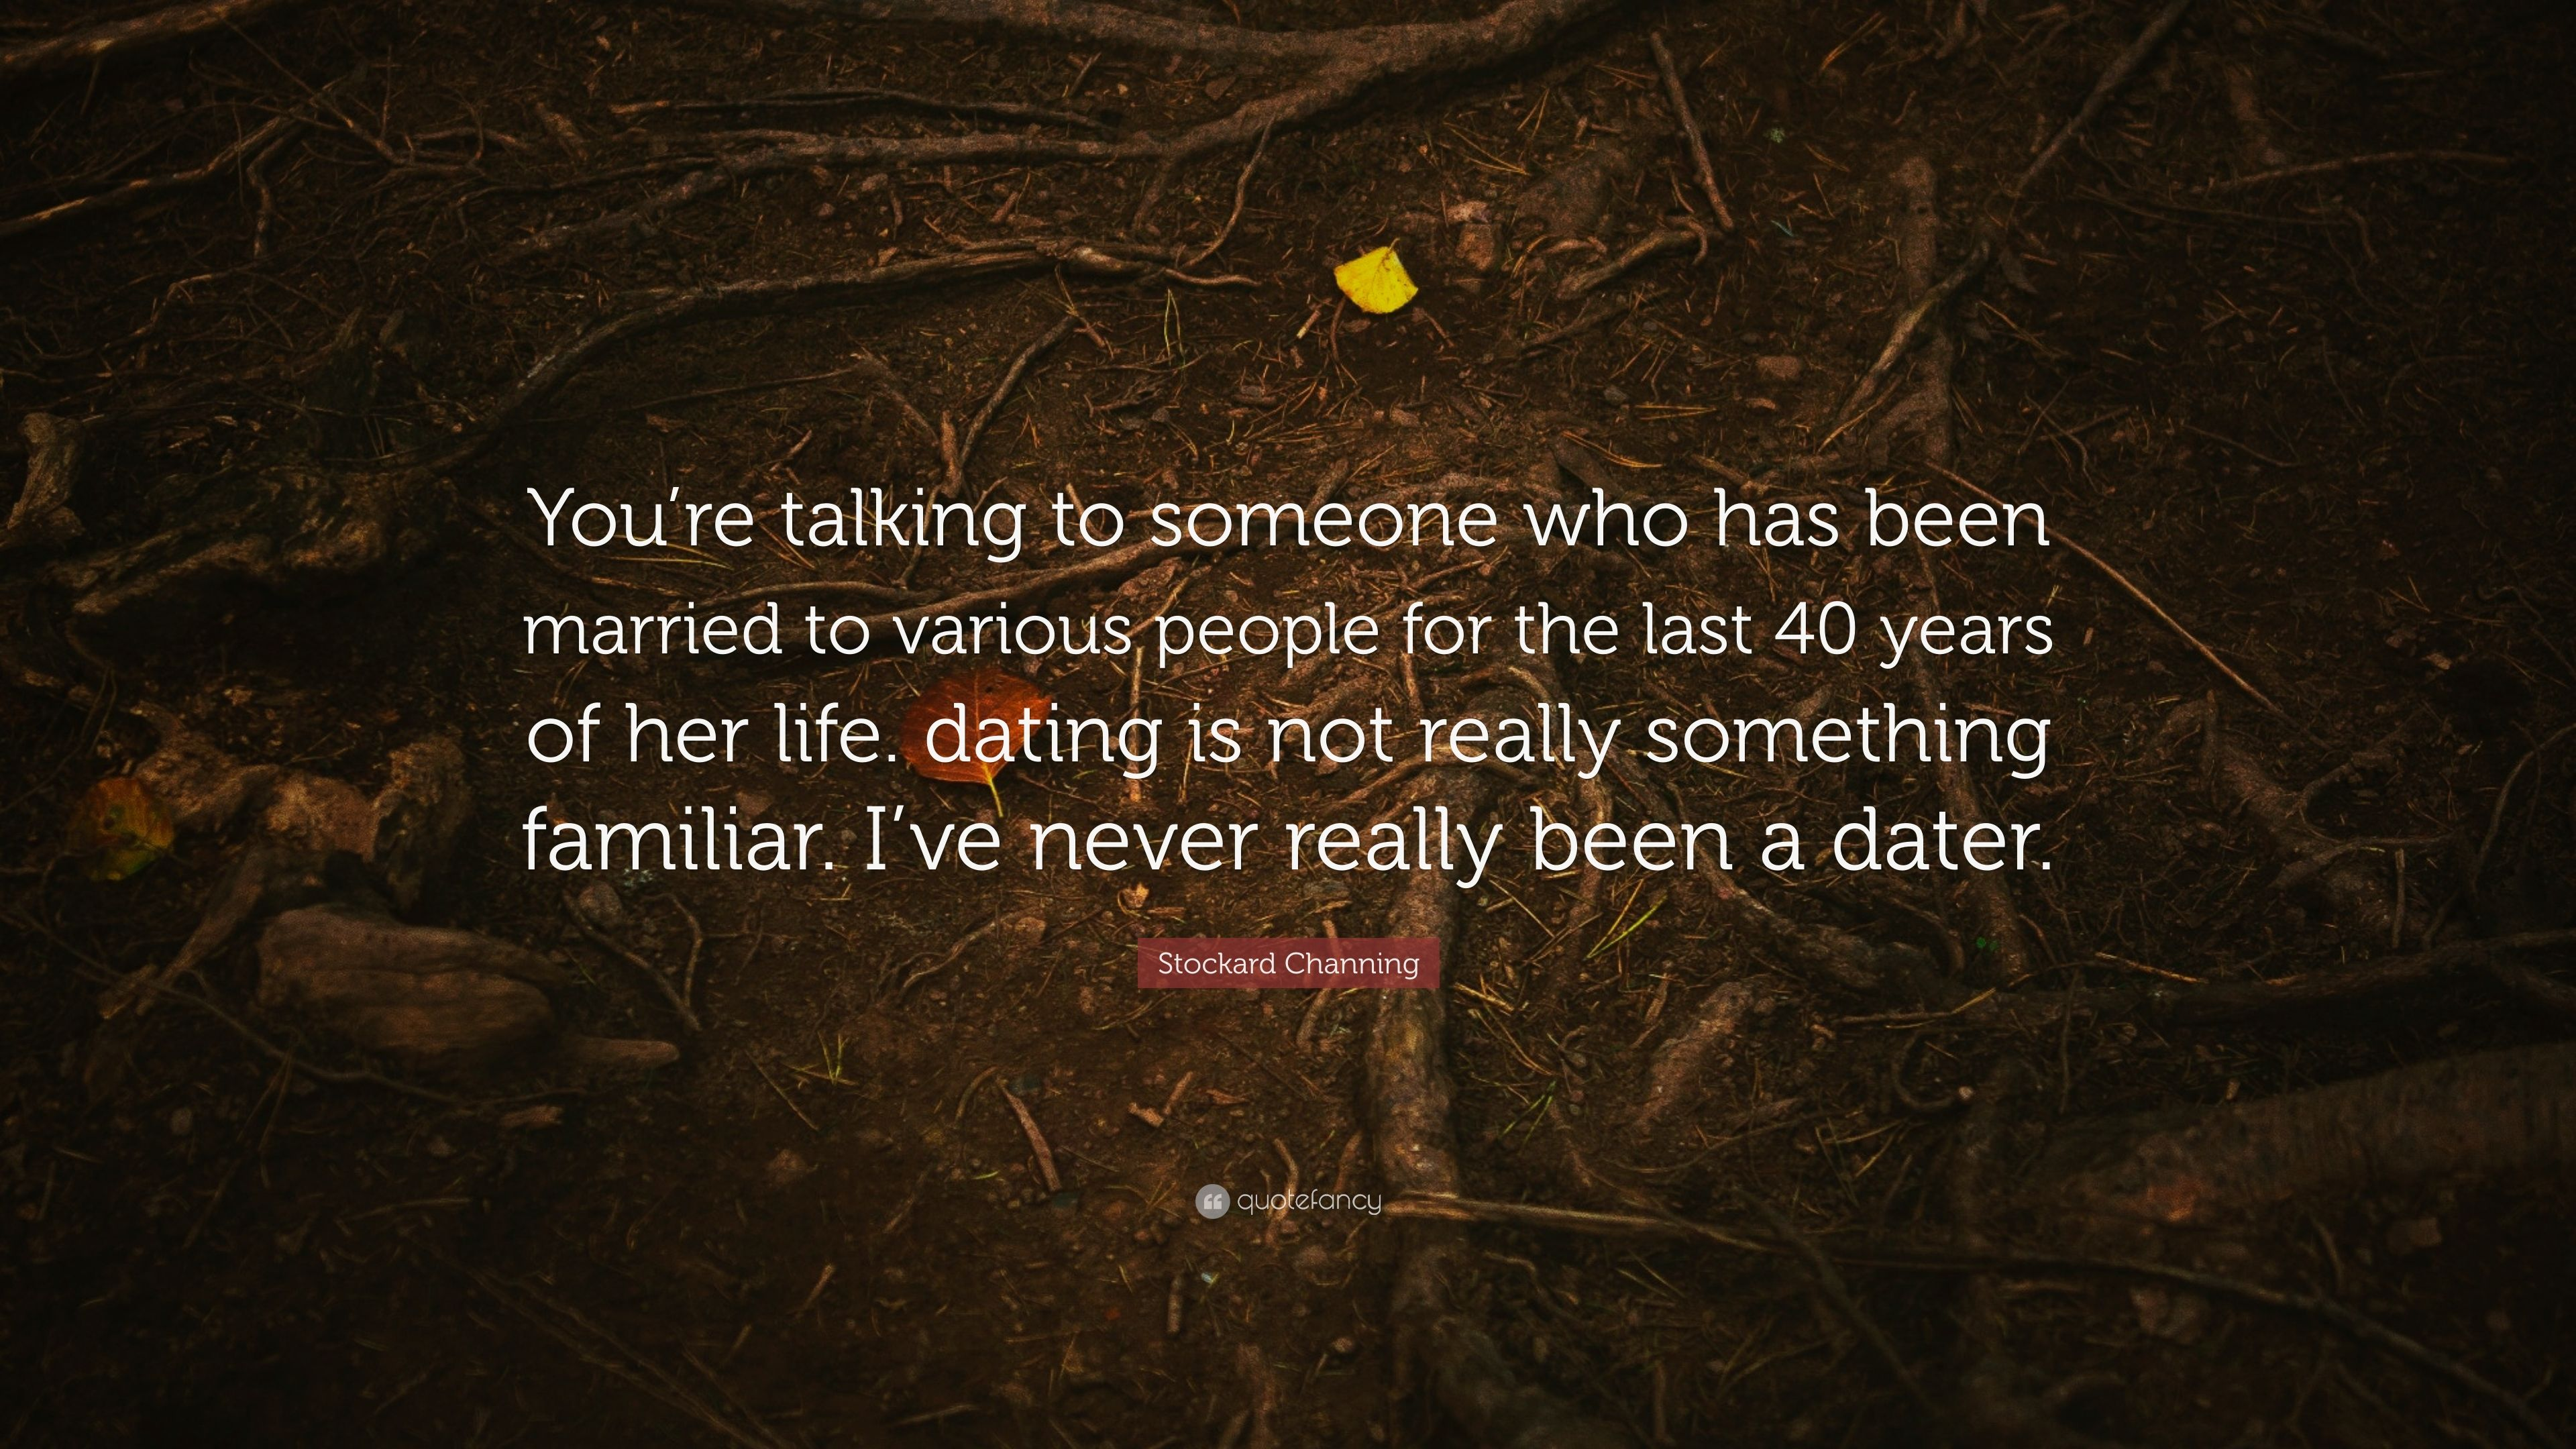 dating someone youve known for years quotes